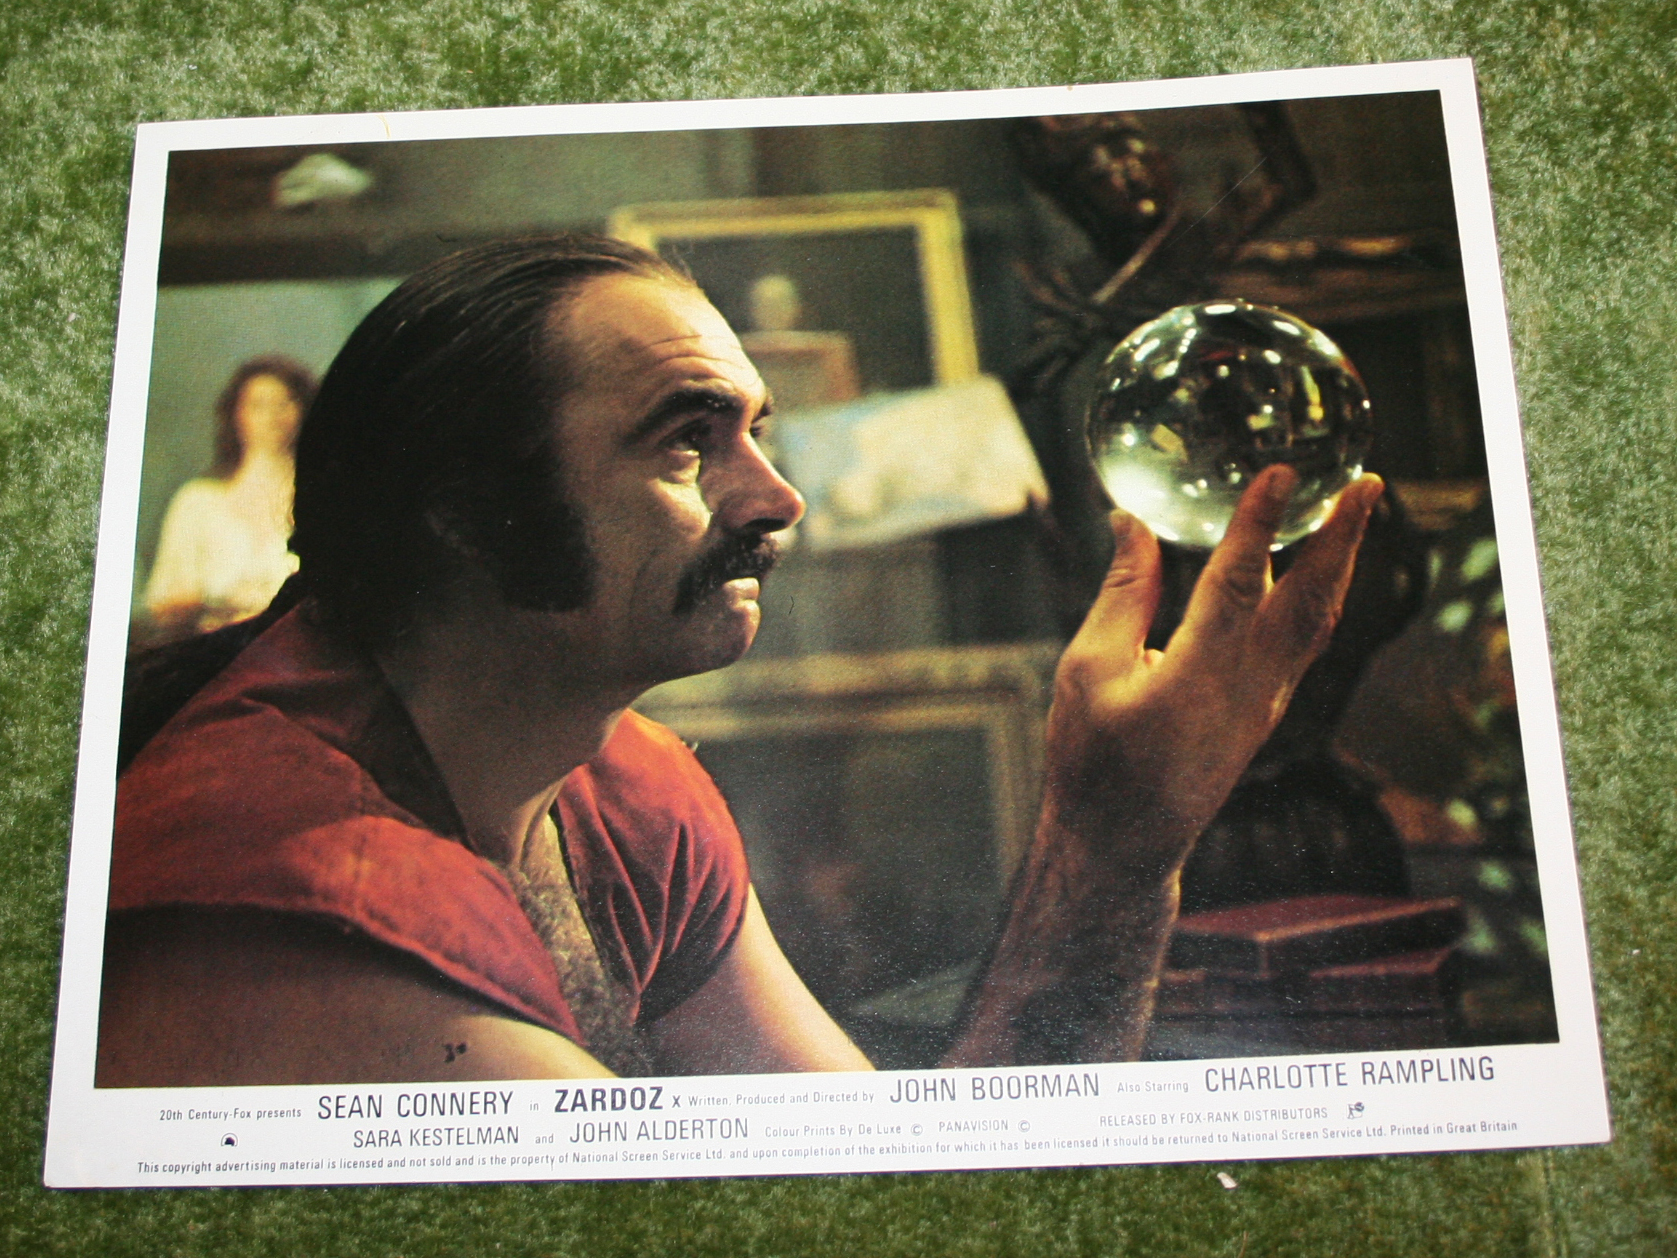 Zardoz UK stills